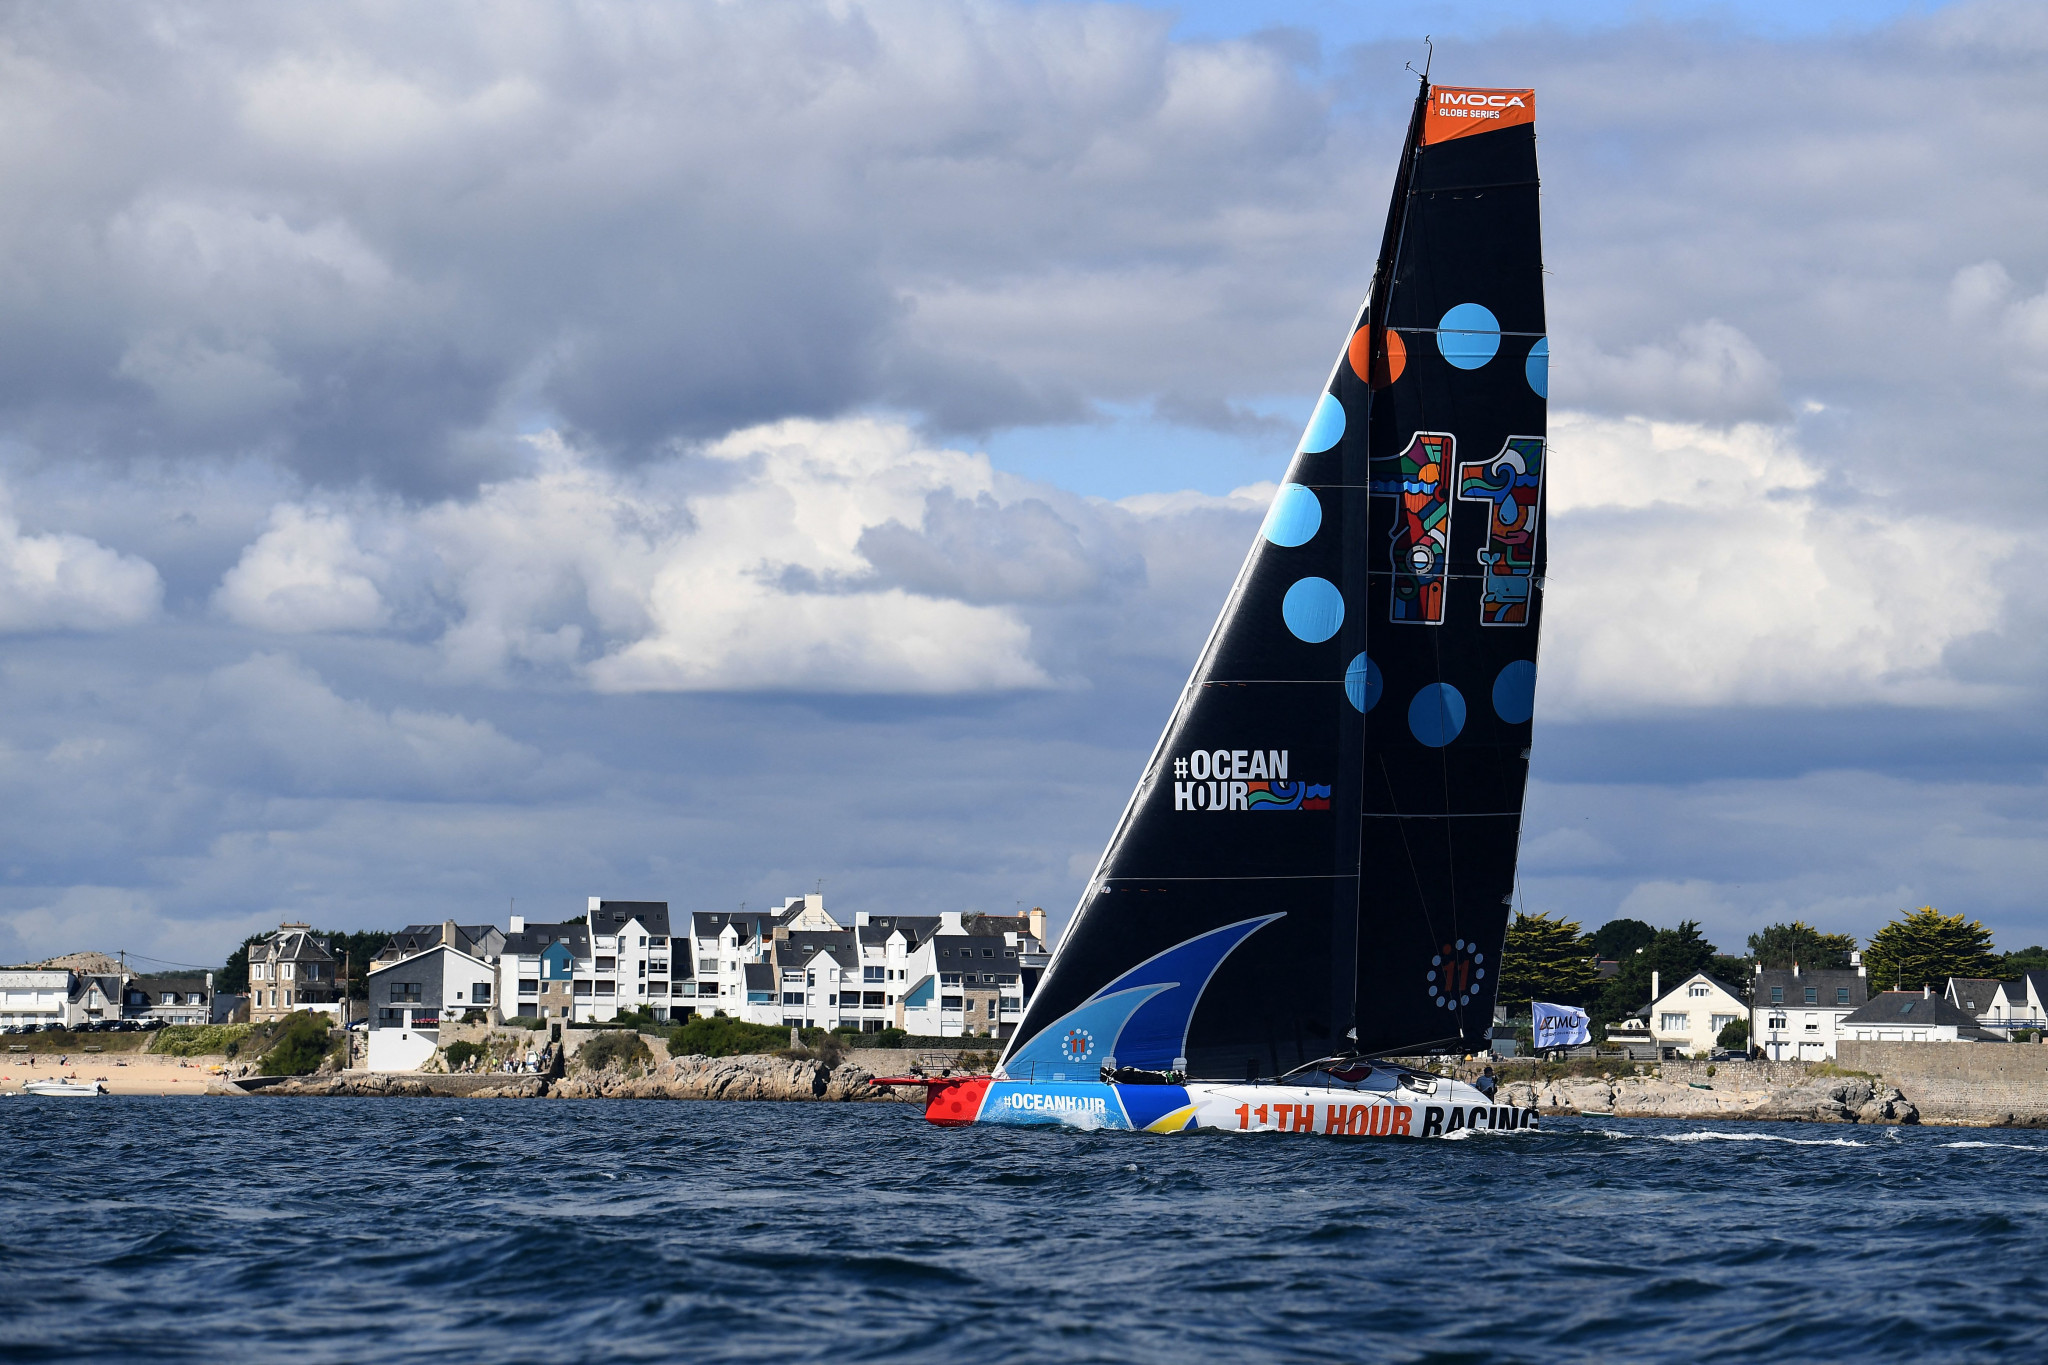 Italy lead 2021 Hempel Mixed Two Person Offshore World Championship as Venice finish line nears